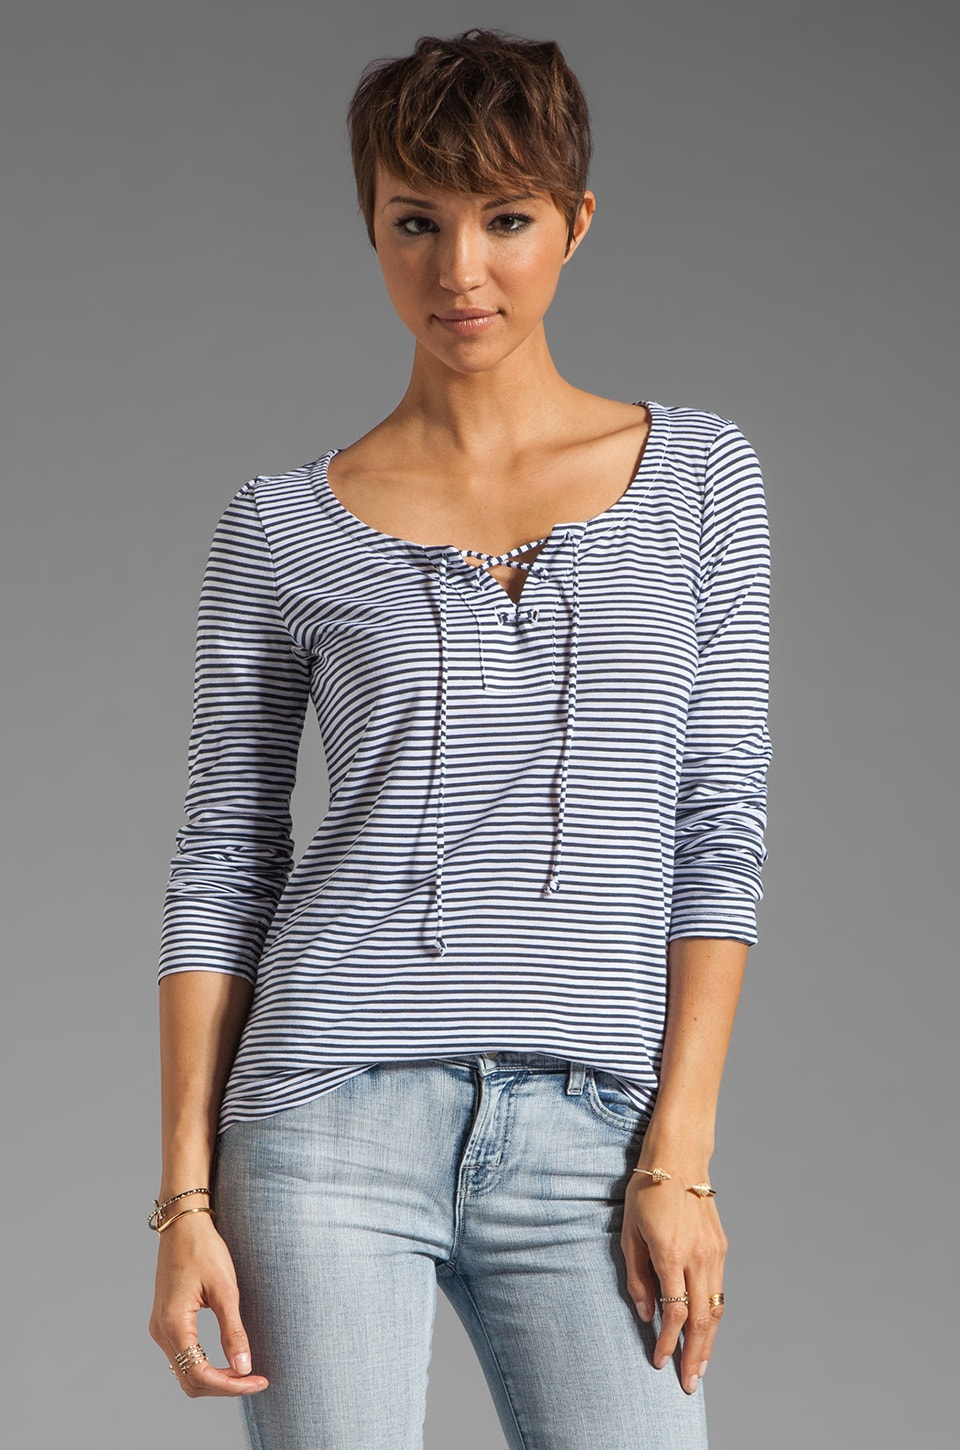 Splendid Naples Stripe Lace Up Top in White